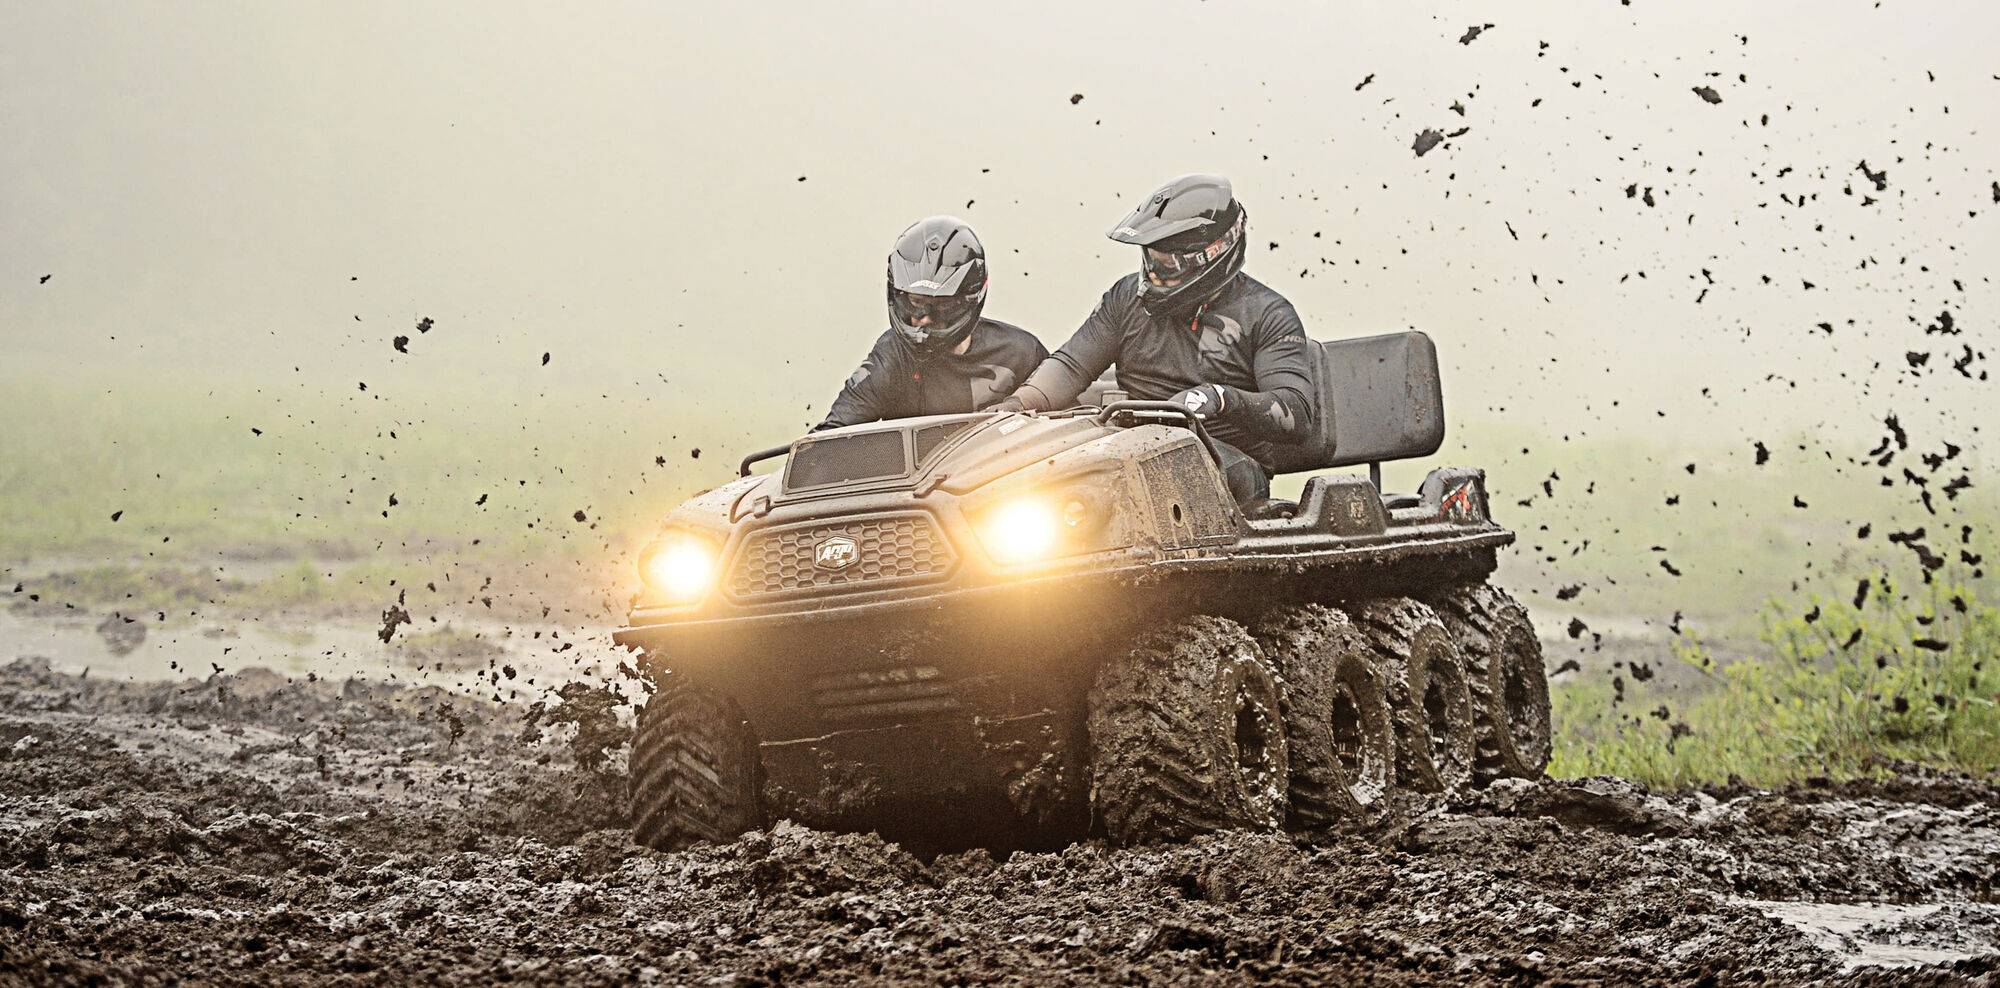 The amphibious ARGO is the essential off-road vehicle for